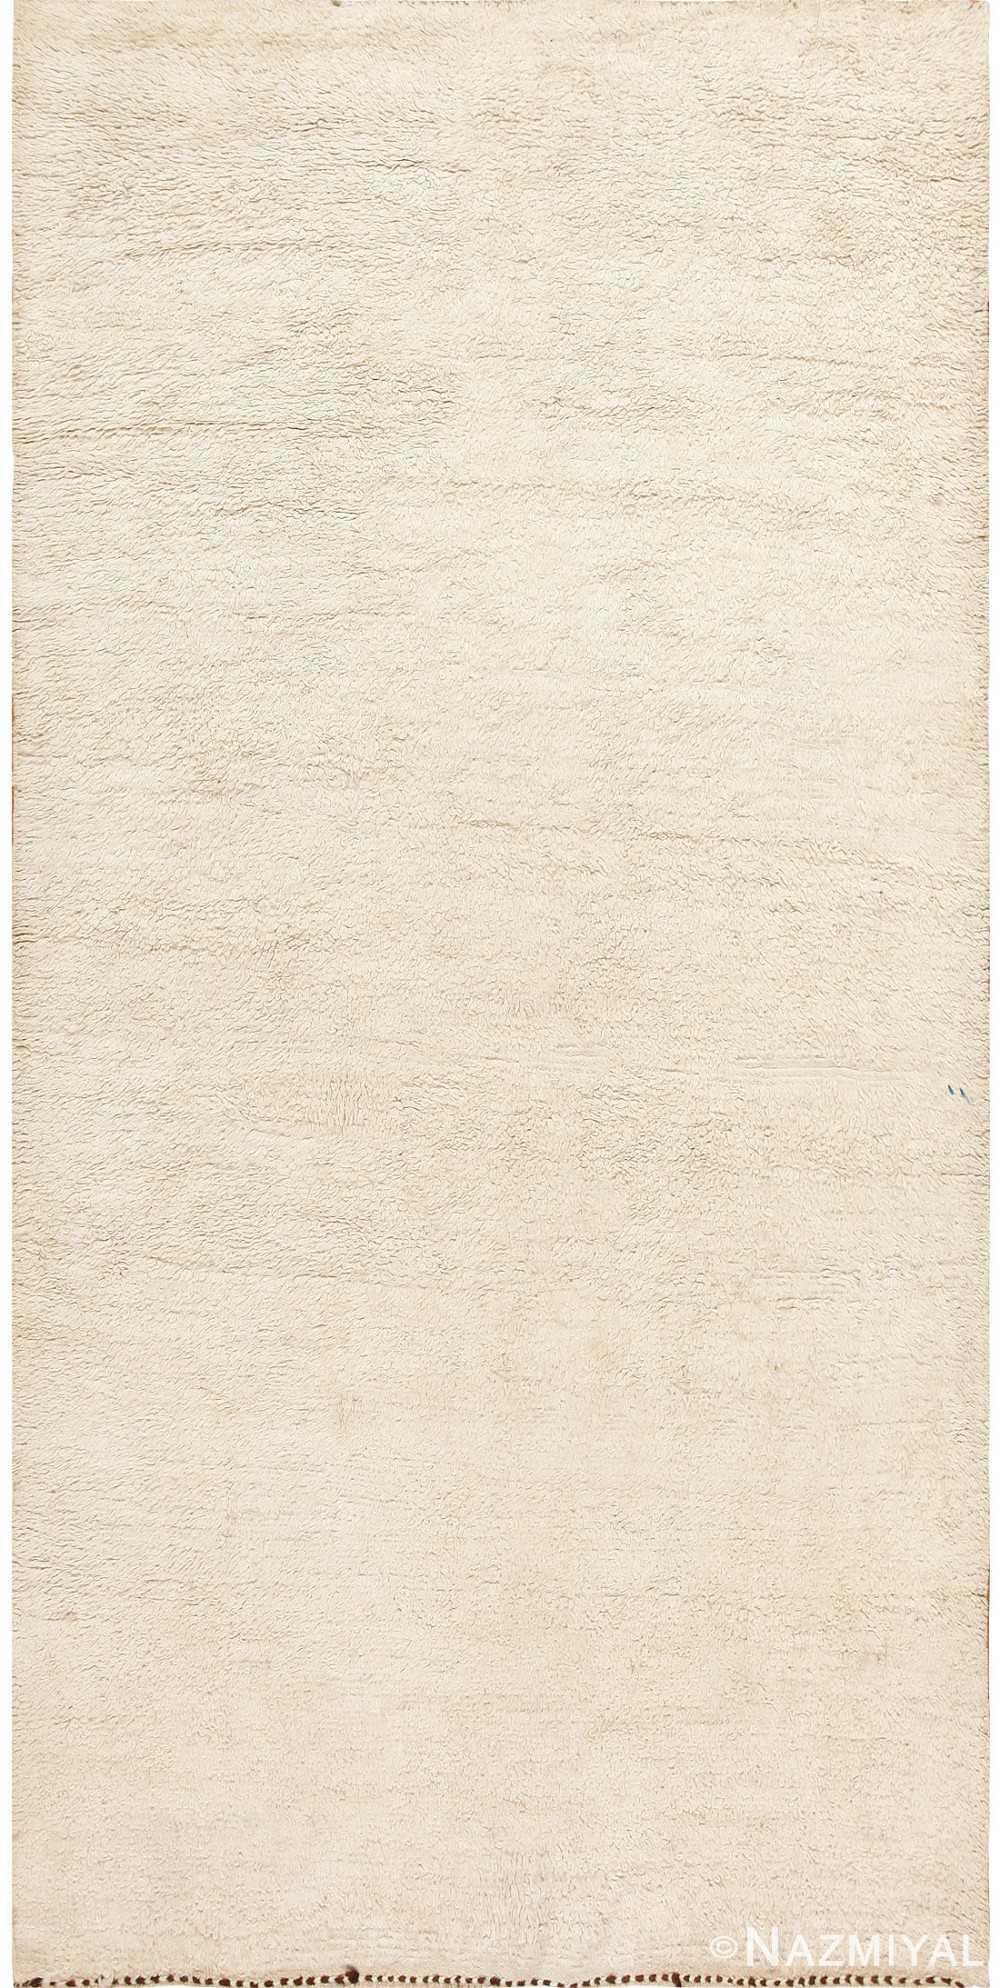 Ivory Moroccan Beni Ourain Rug 47908 Detail/Large View